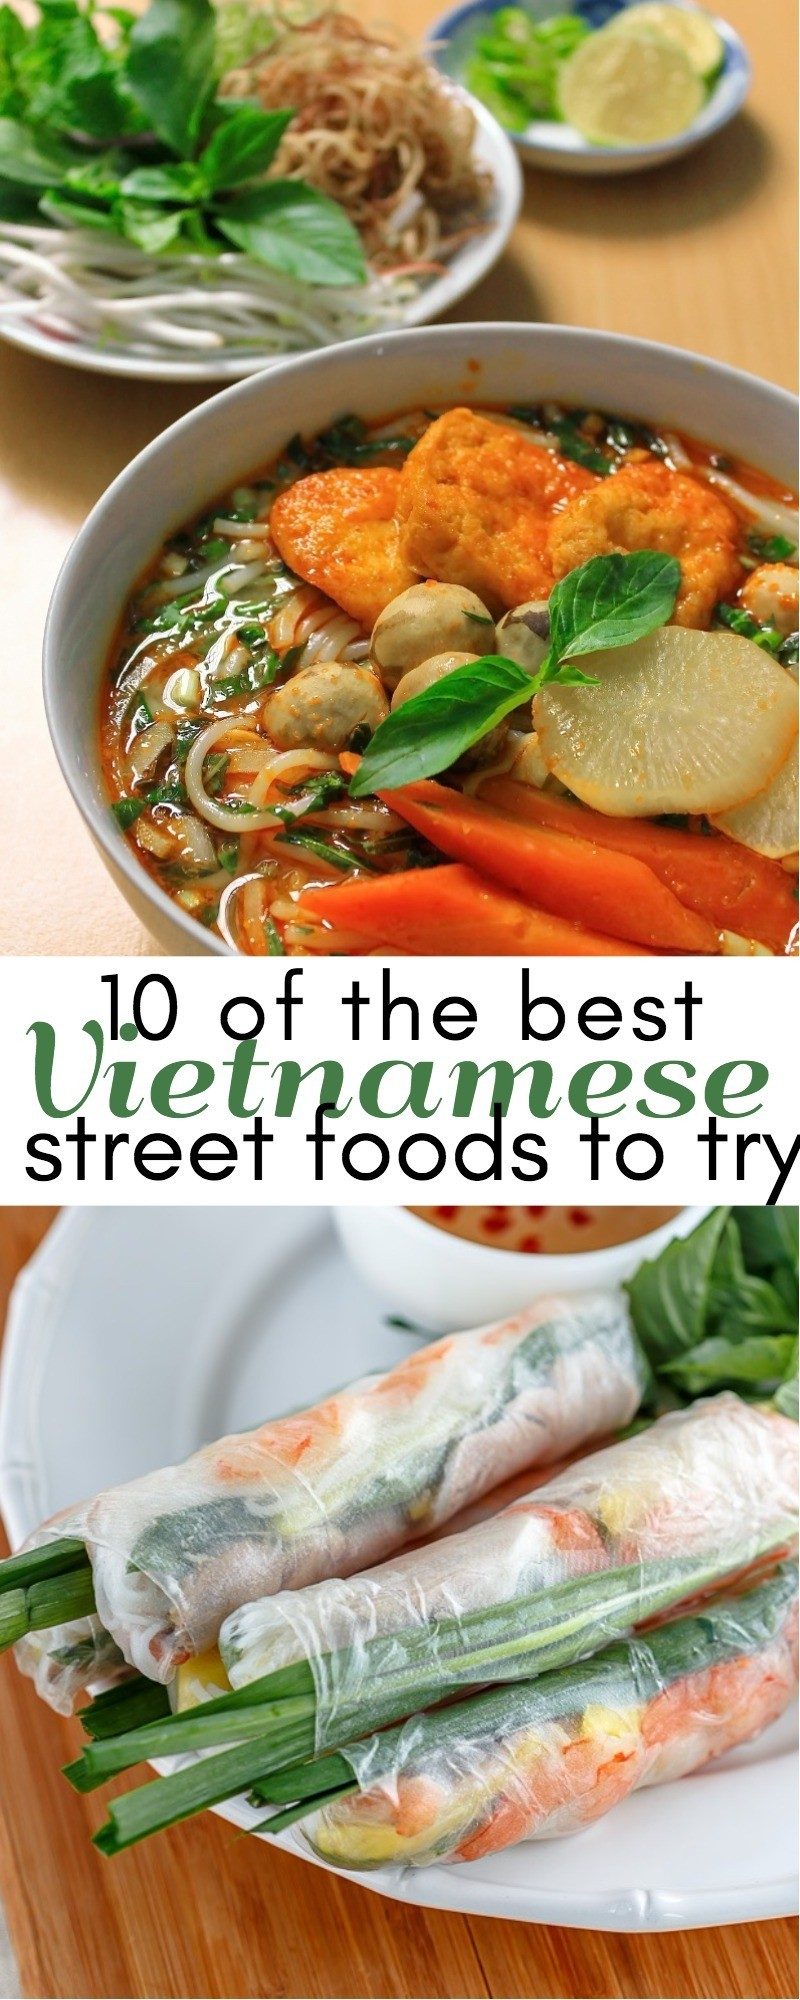 10 Of The Best Vietnamese Street Foods To Try When You Visit Vietnam | Vietnamese dishes | food of Vietnam | Vietnam street food | best Vietnamese dishes | street food in Vietnam | Vietnam street food | honeyandlime.co